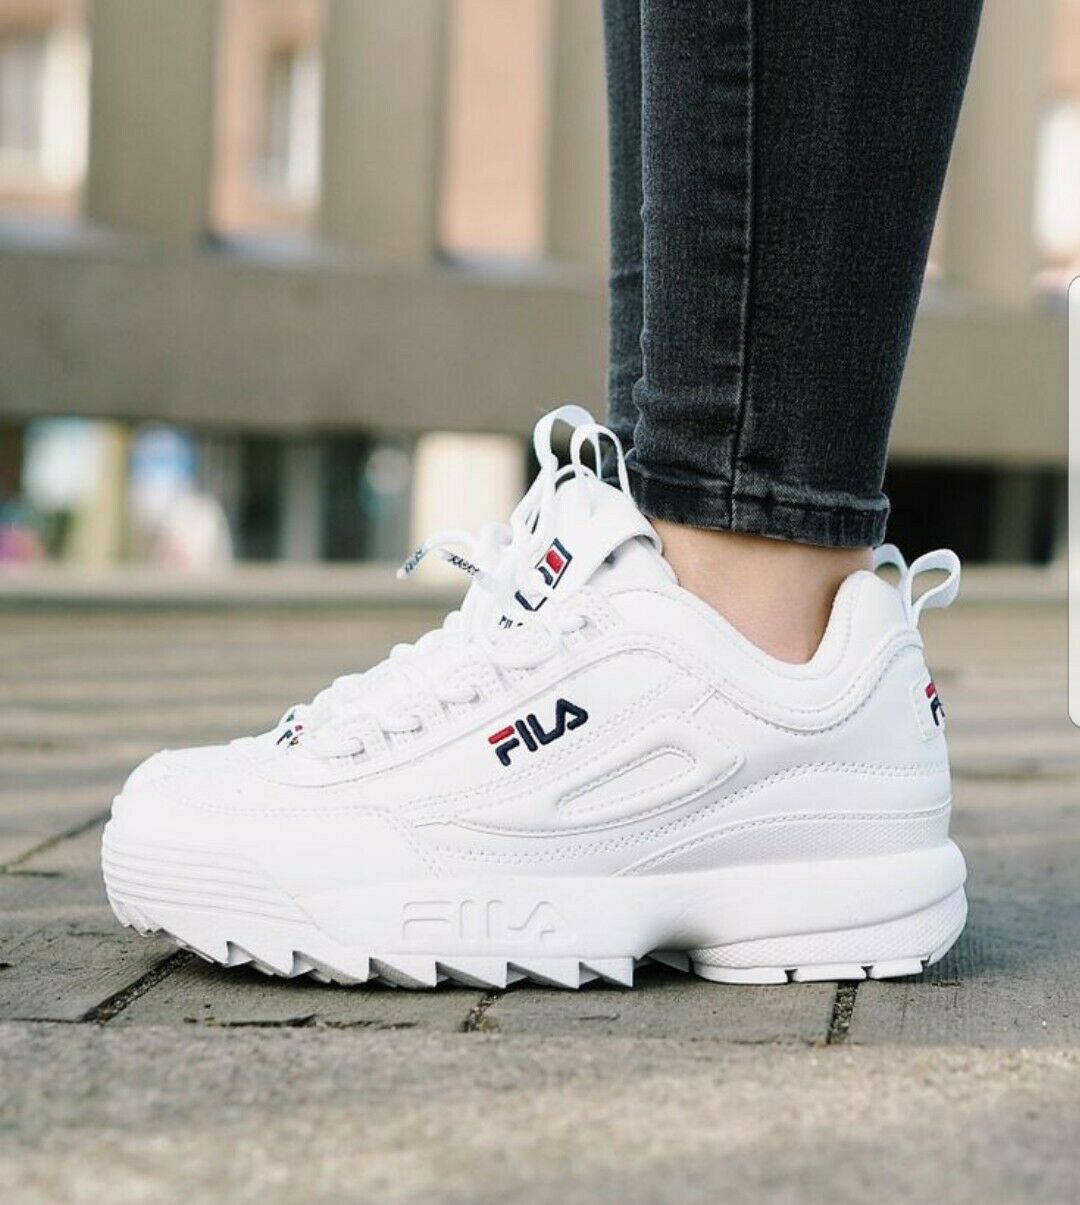 factory outlet coupon codes new release Fila – 🥇 Prix Pas Cher